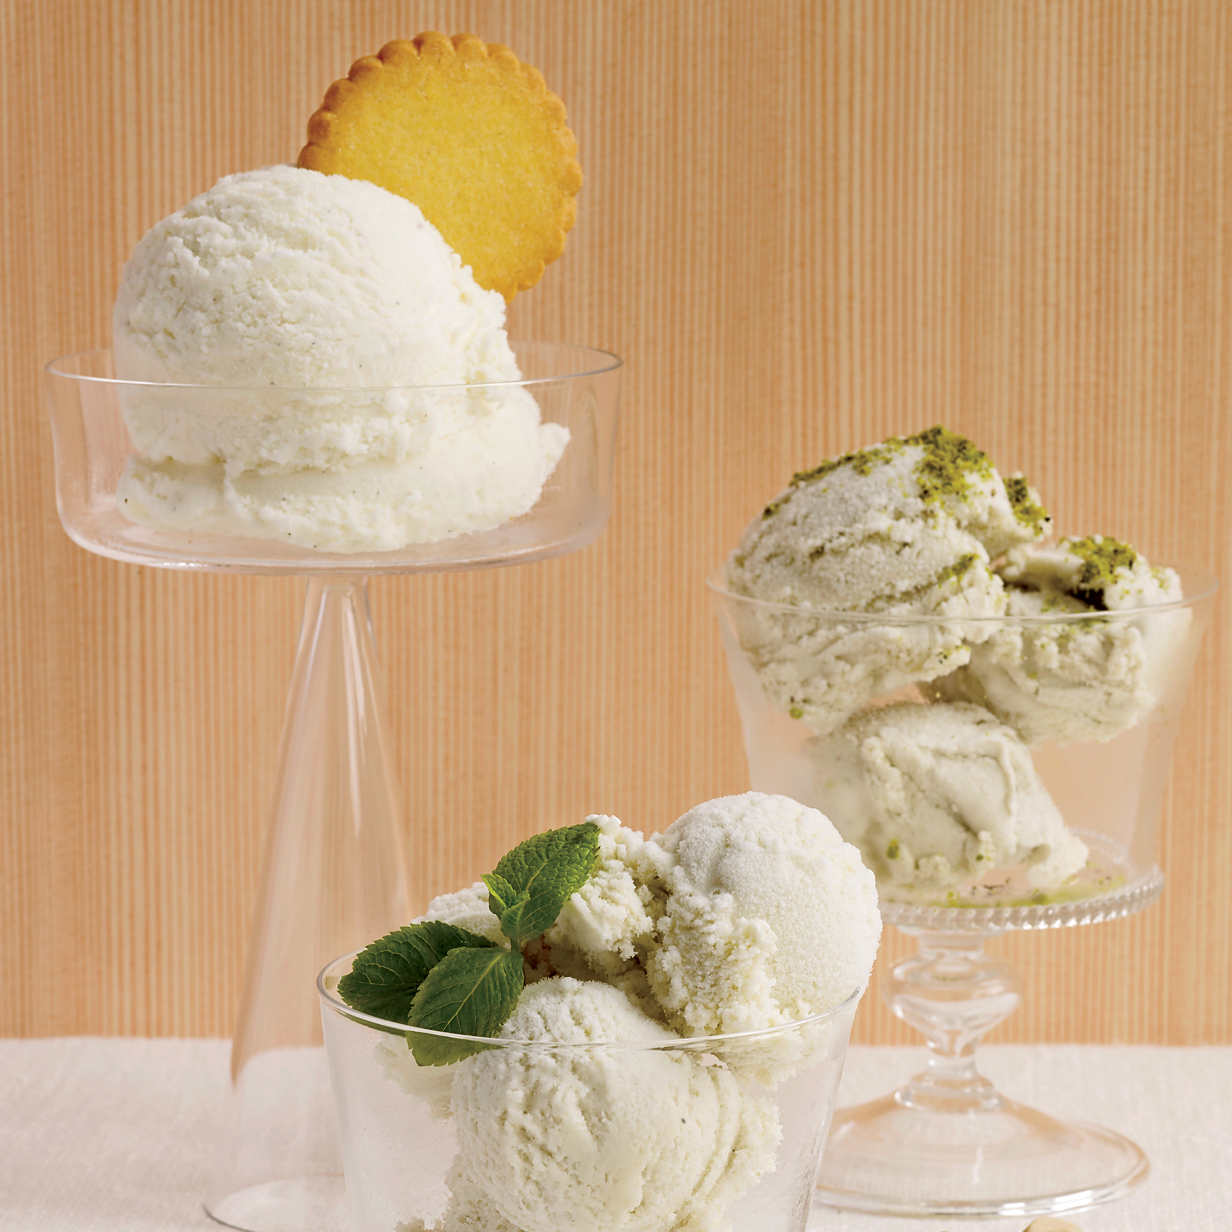 Homemade Ice Cream Recipes: Vanilla Bean Ice Cream